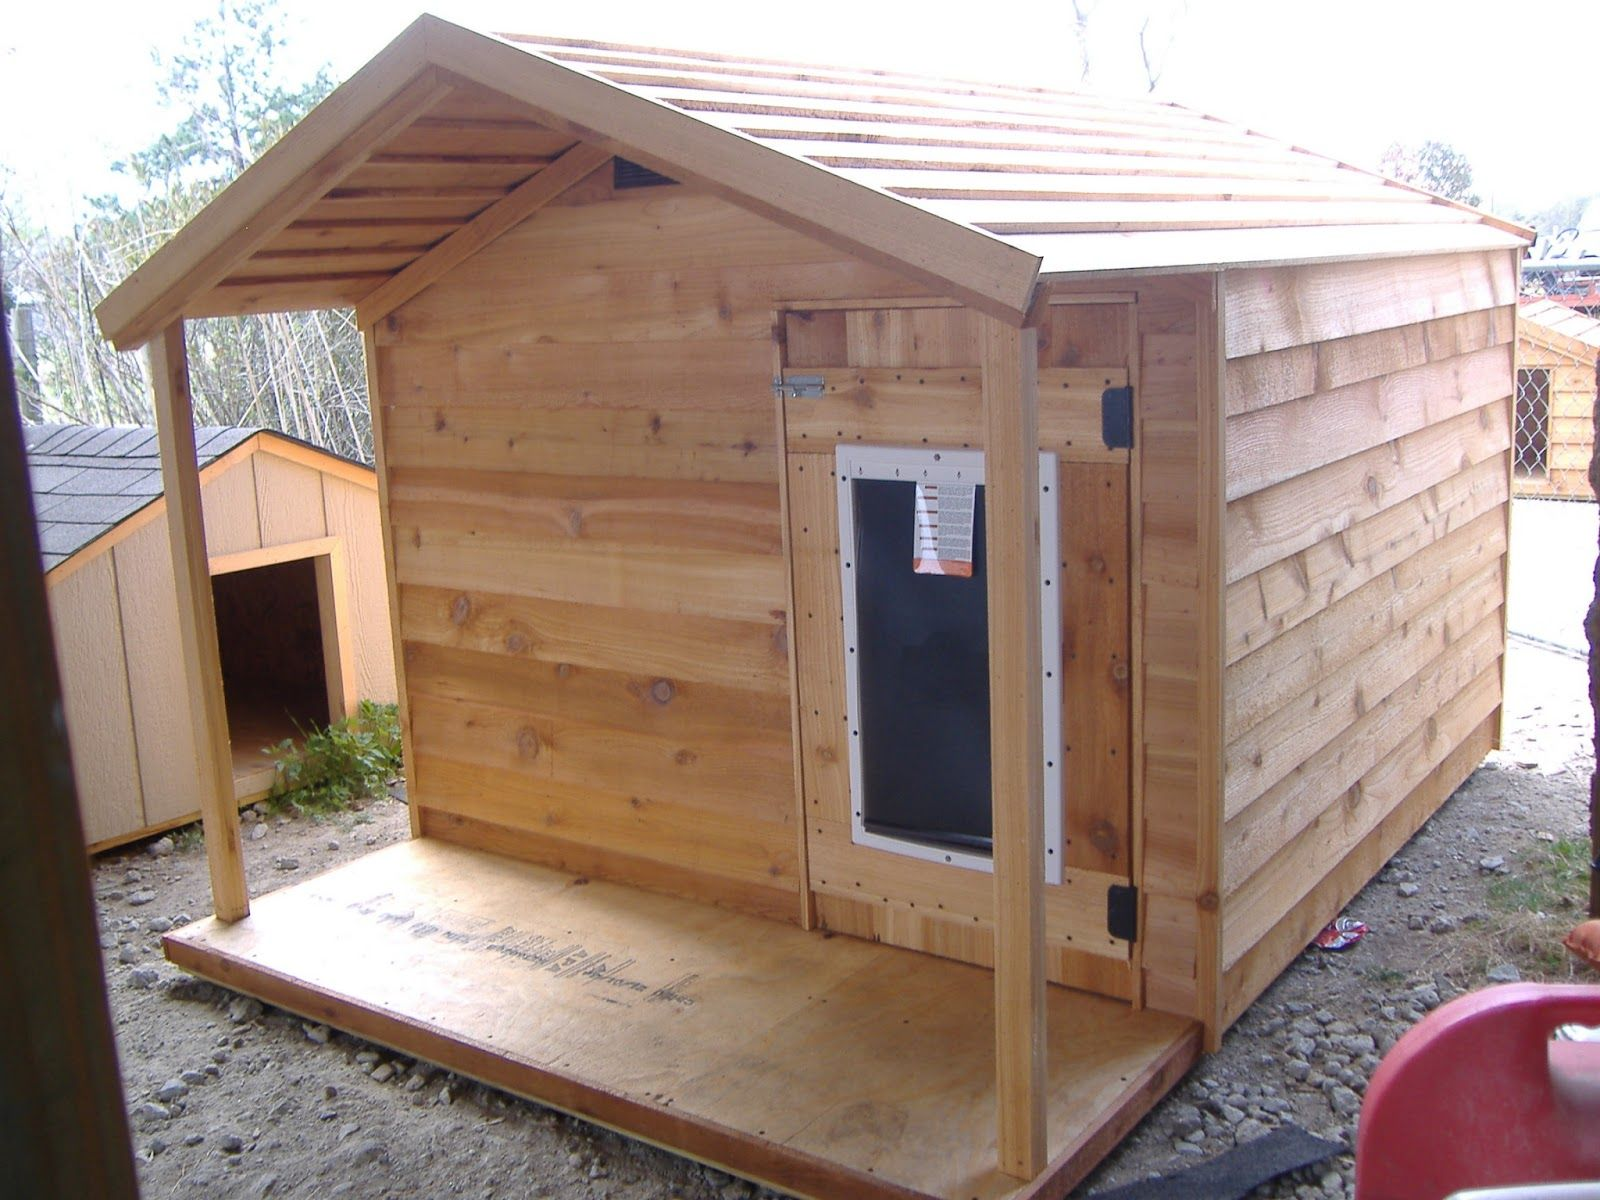 Insulated Dog Houses for Large Dogs